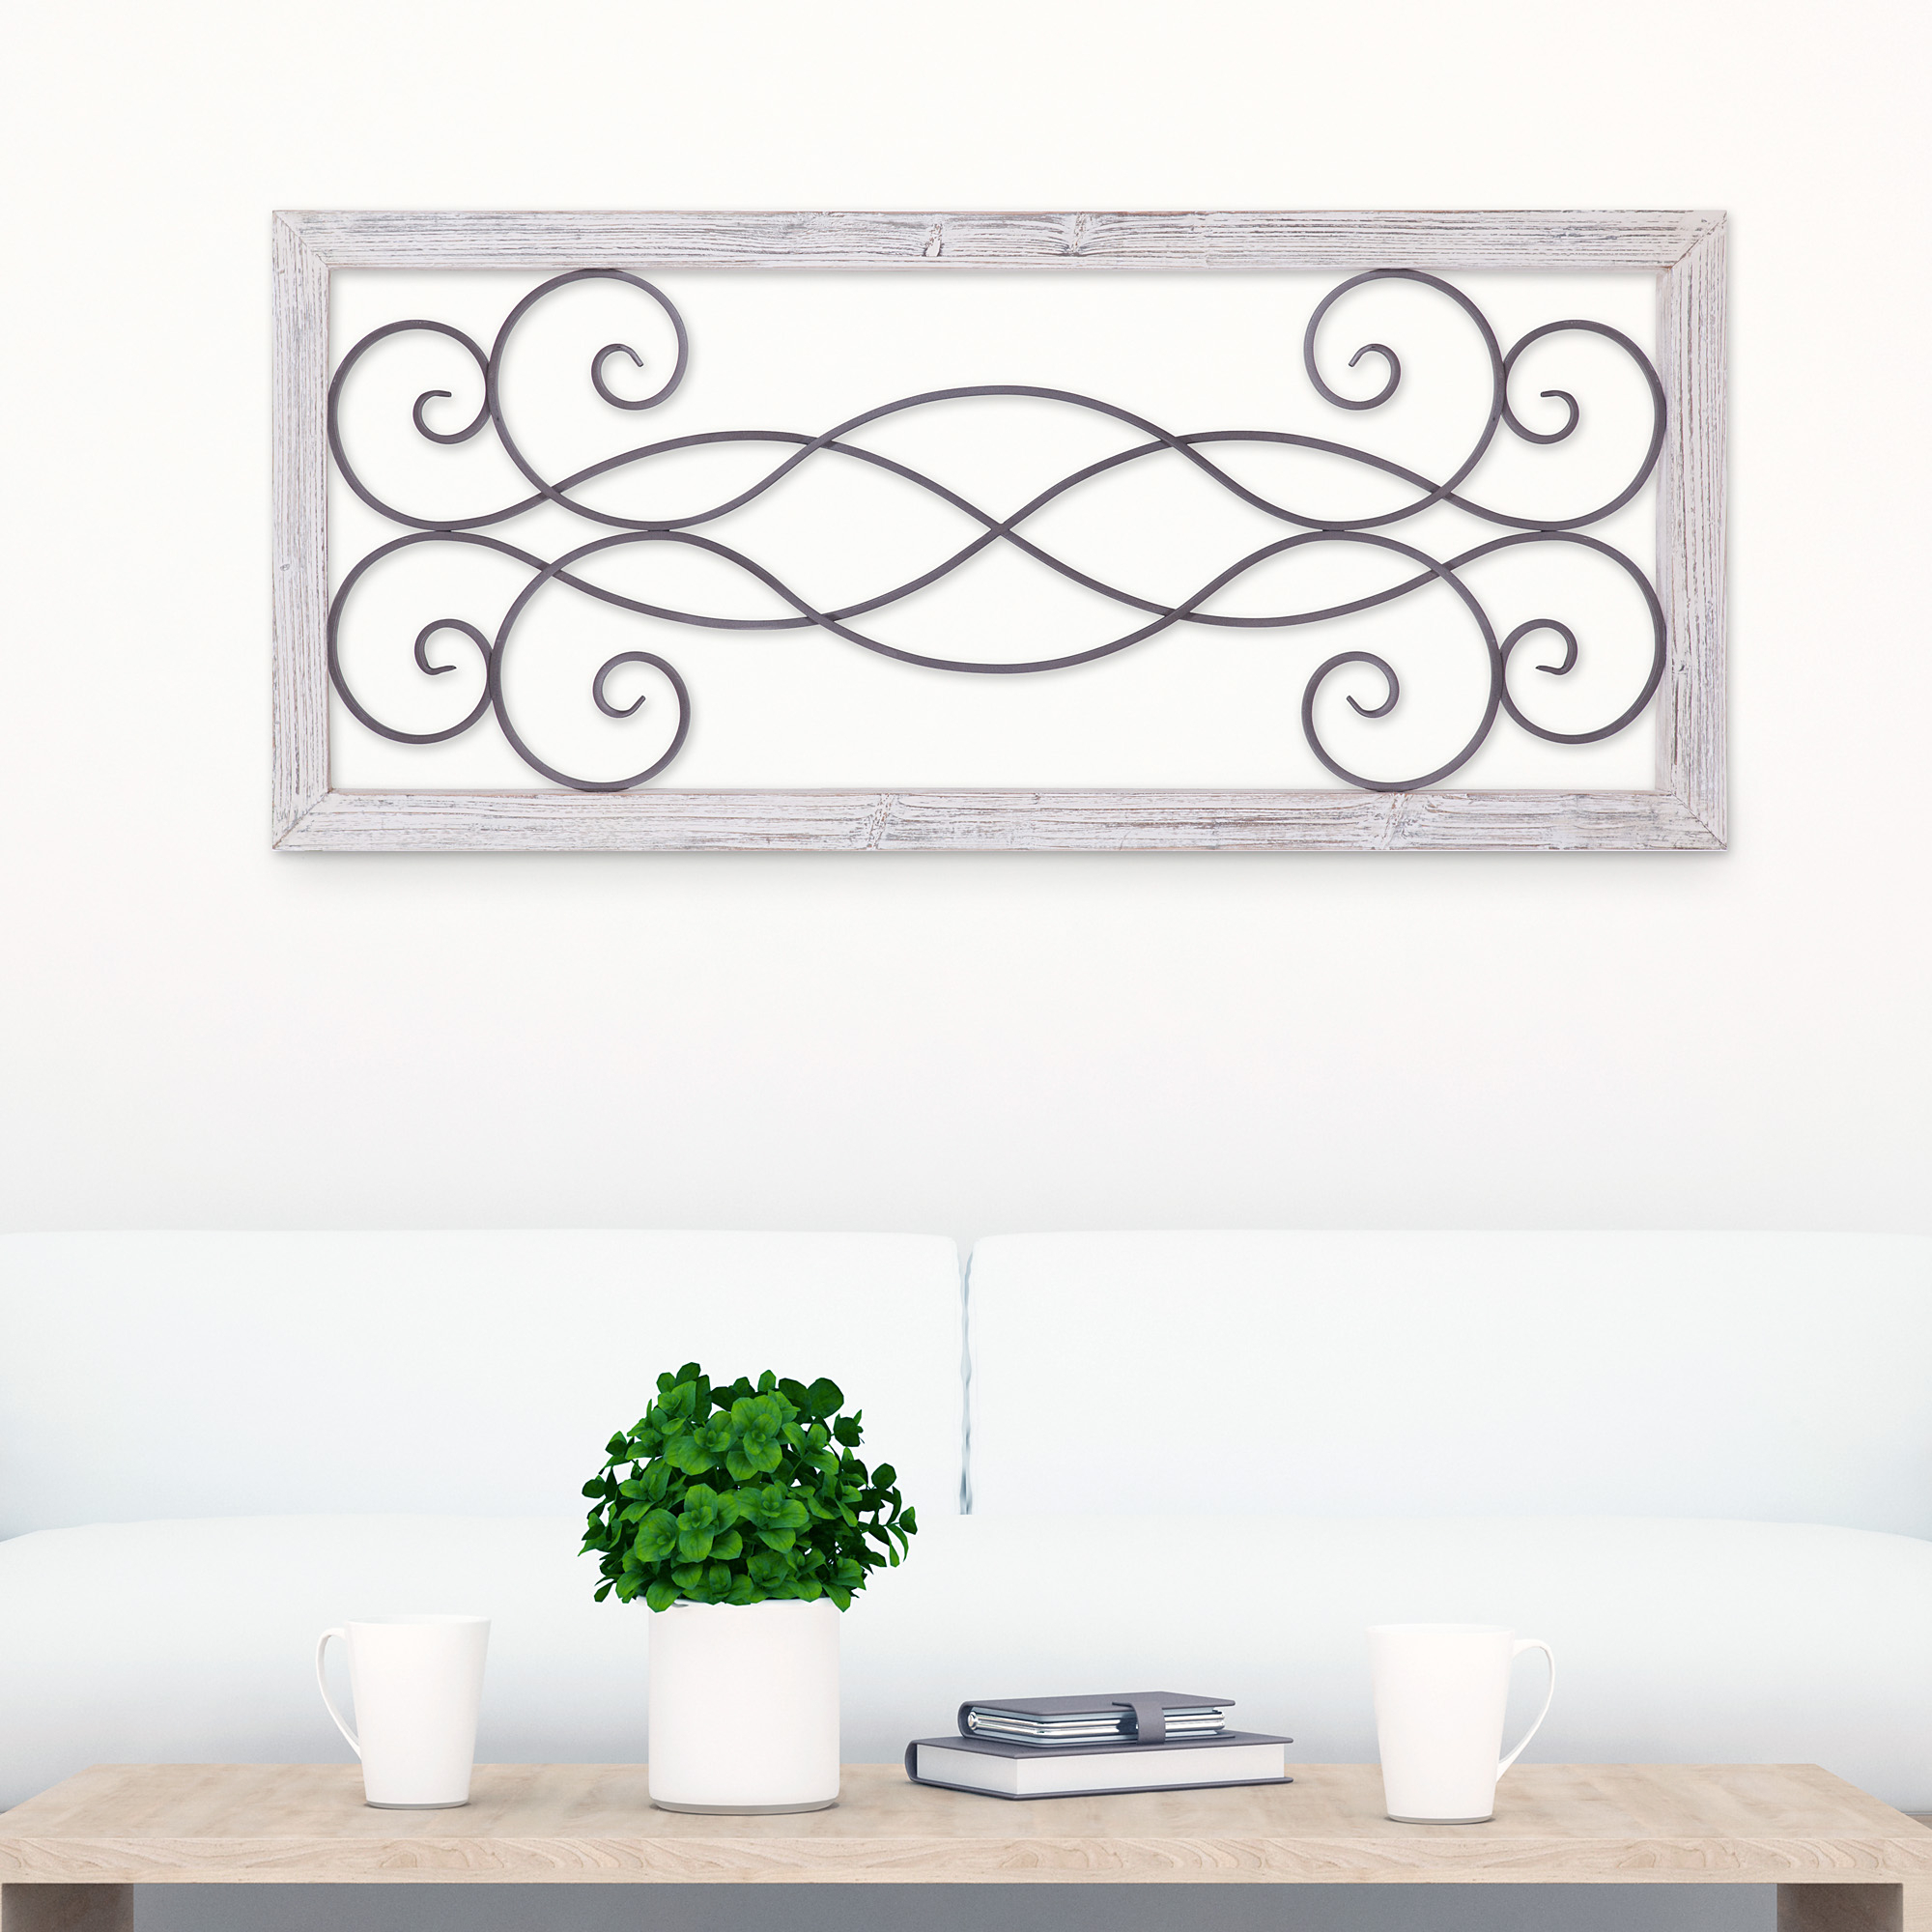 Patton Wall Decor Rustic White Washed Wood And Metal Decorative Scroll Wall Decor Within Scroll Framed Wall Decor (View 17 of 30)